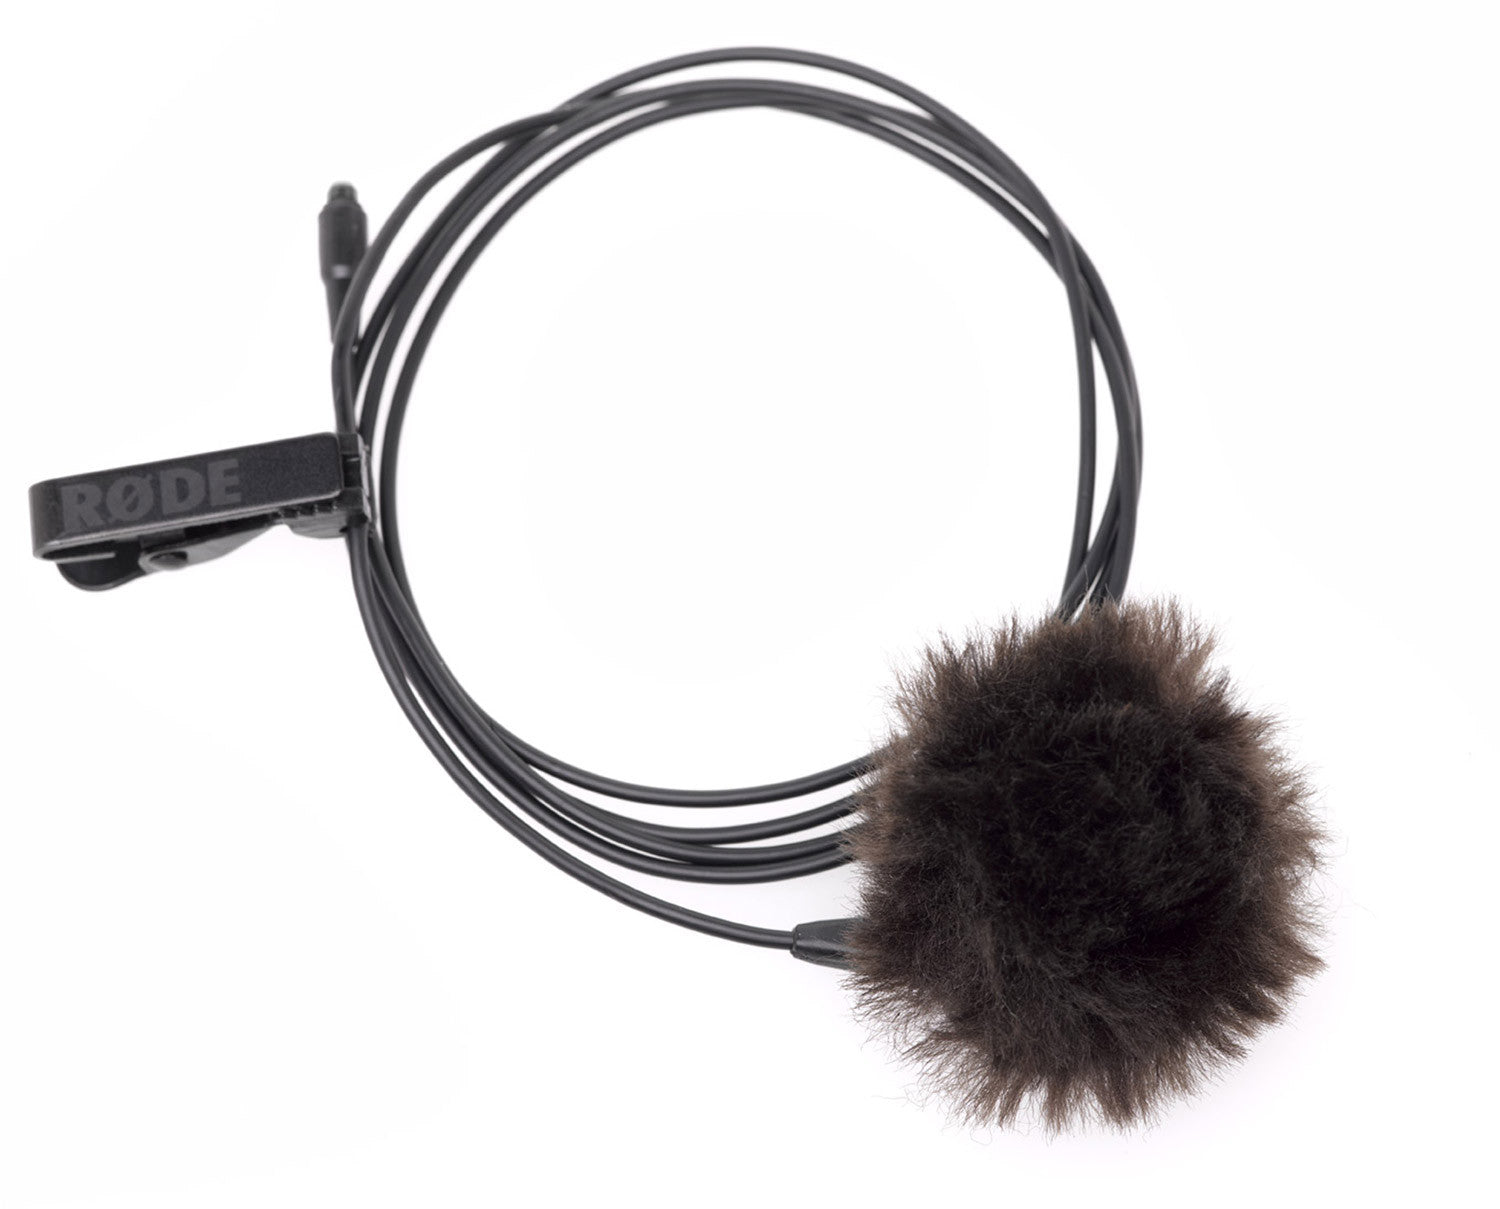 RODE PinMic-Long Wearable Microphone - Audio - RØDE - Helix Camera